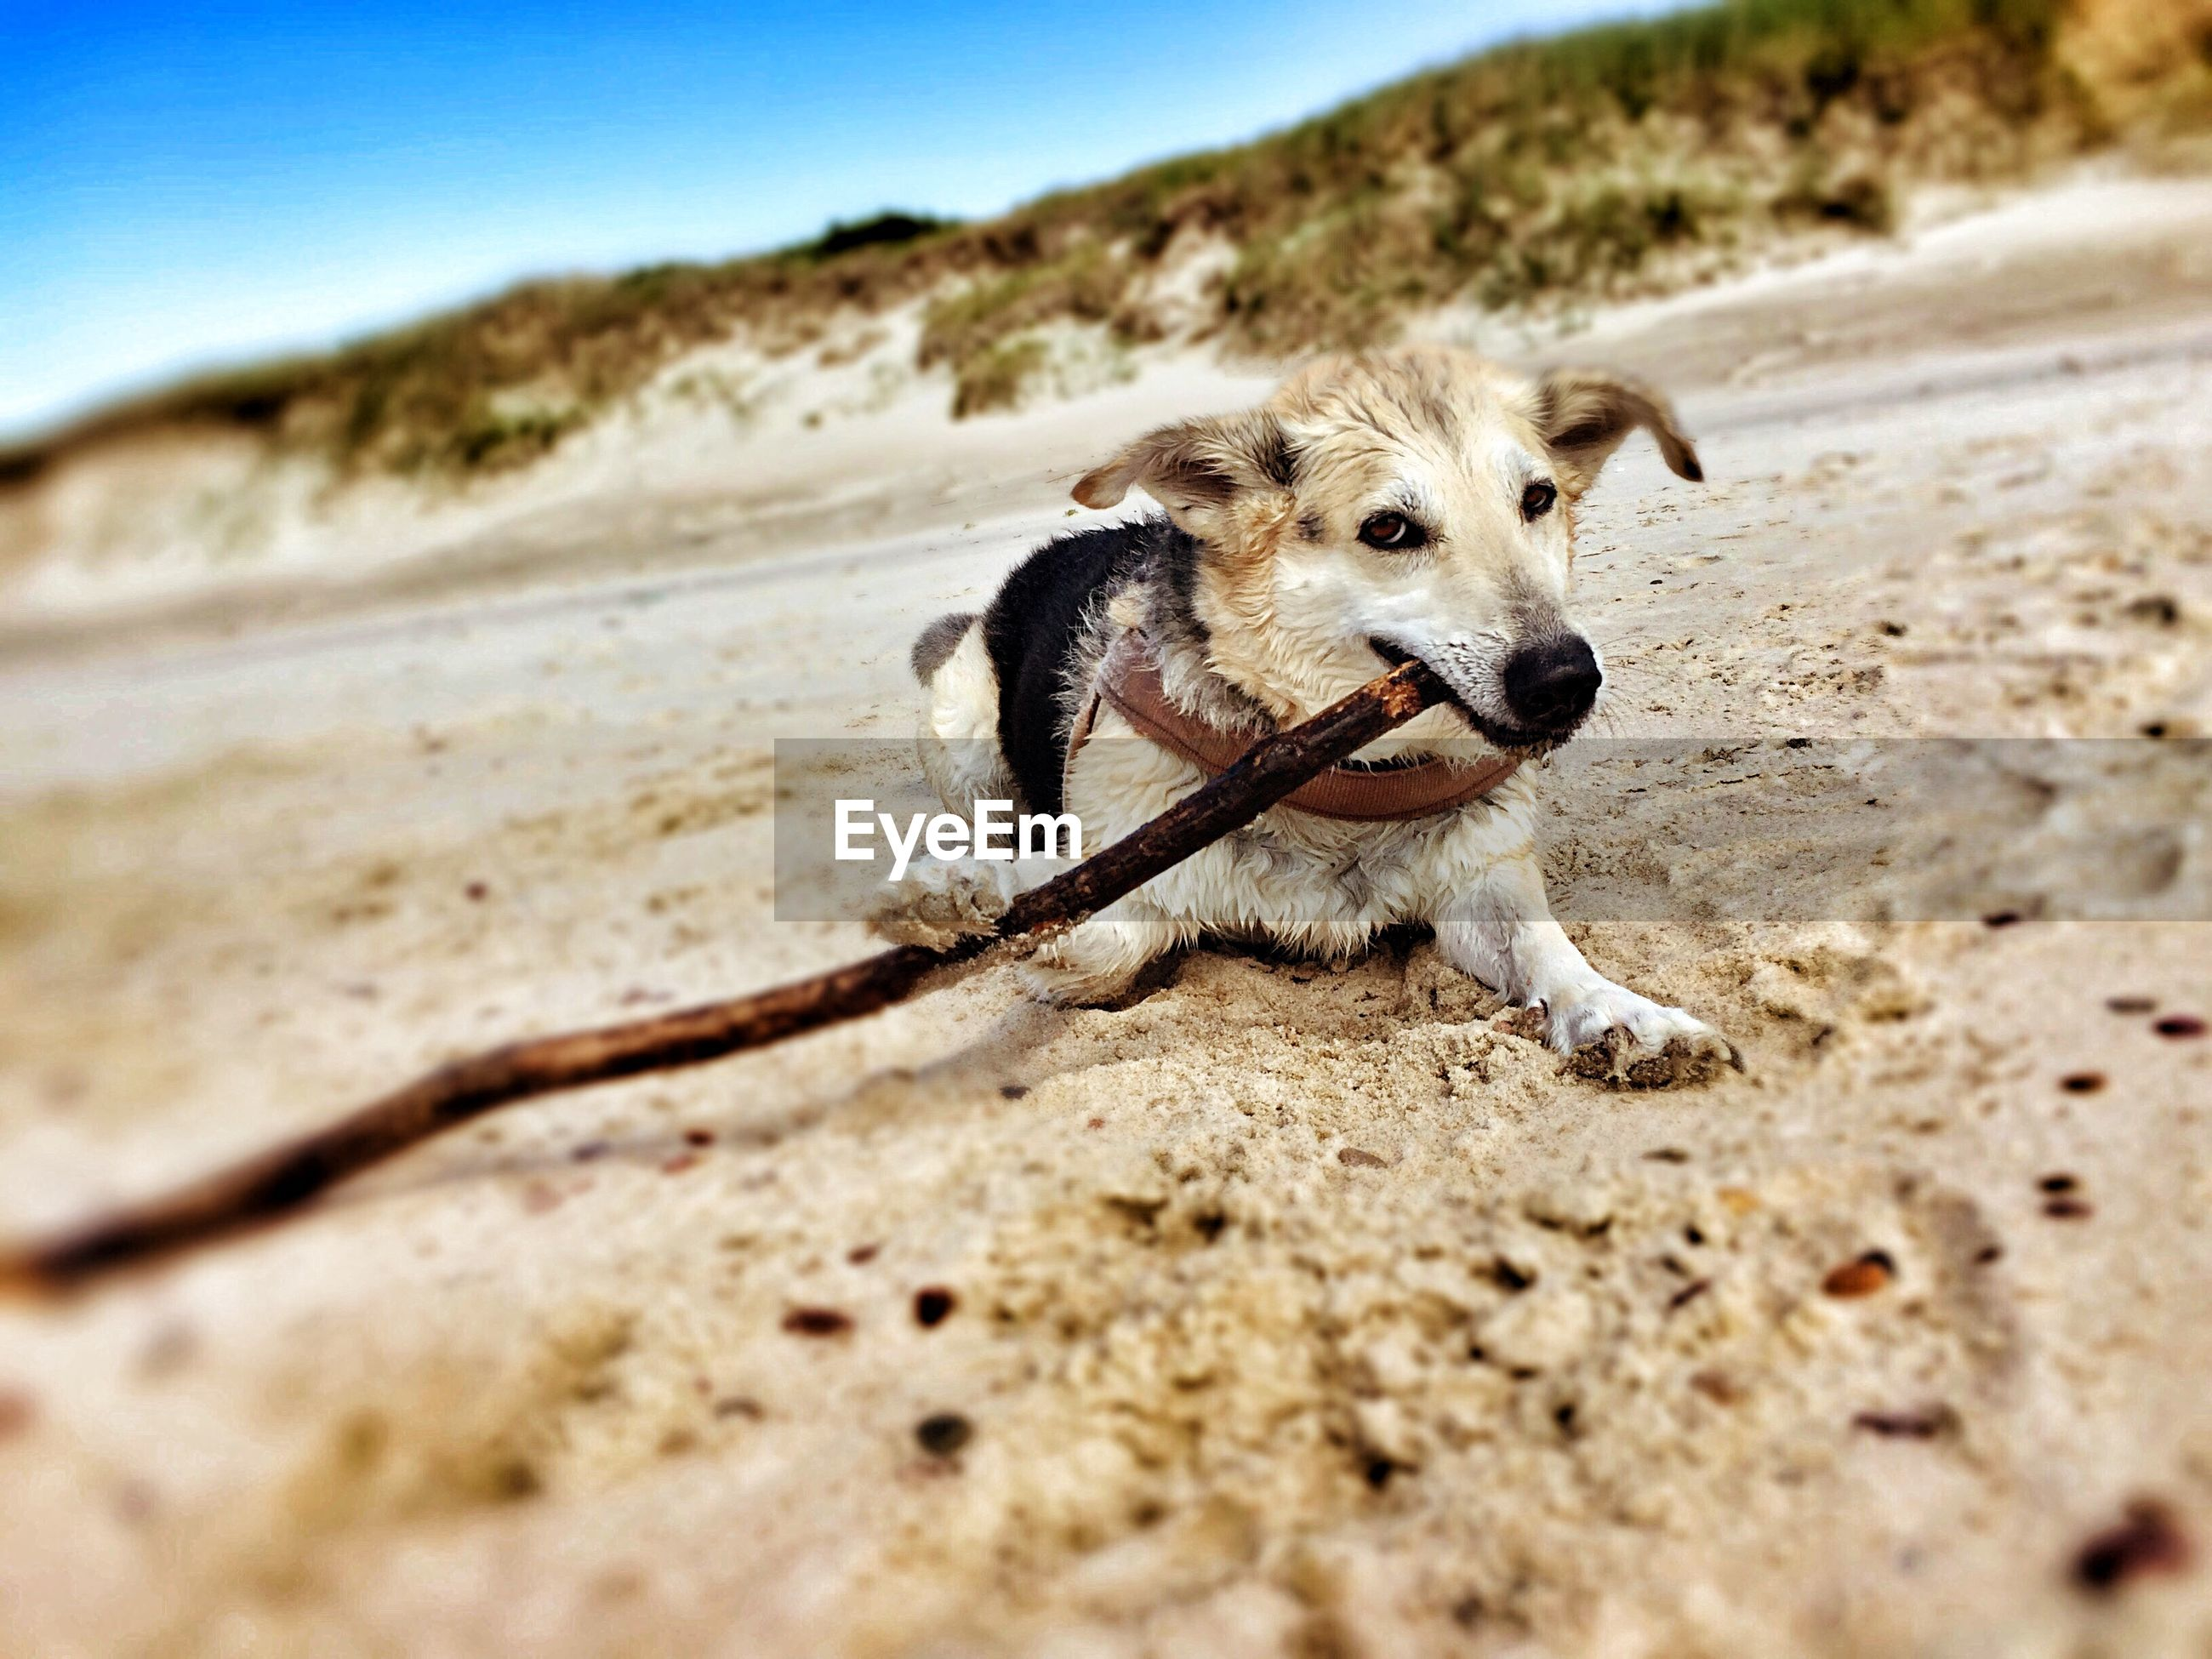 Dog sitting on beach holding wood stick in mouth